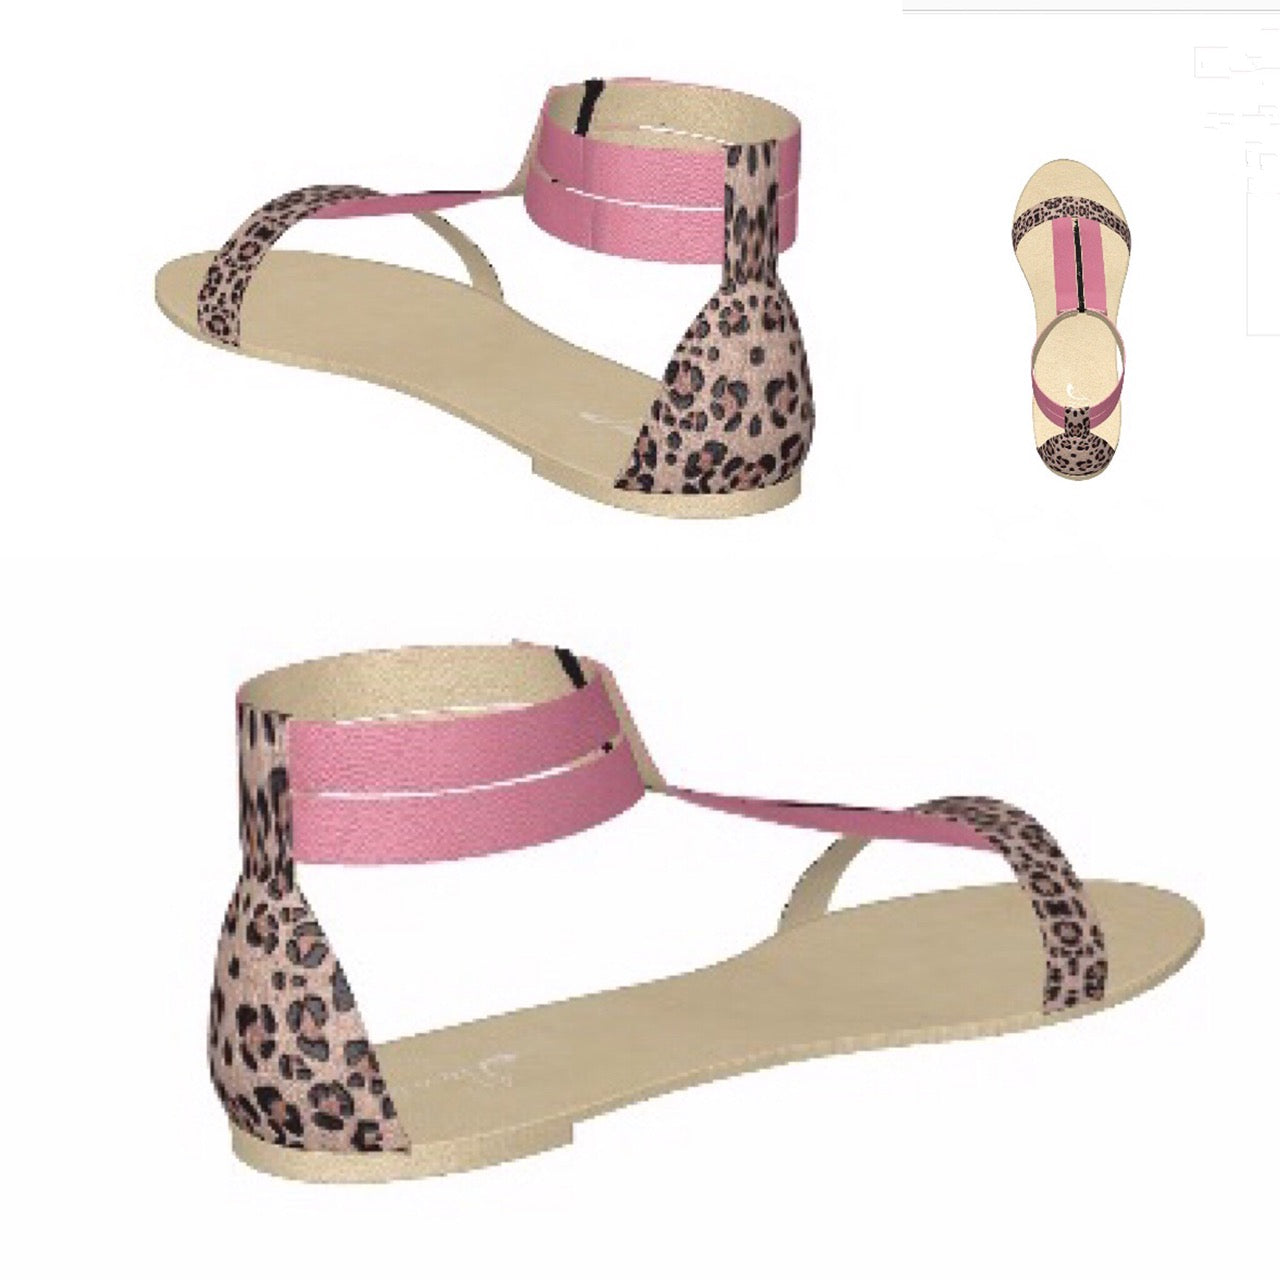 d8a47dfd83b77 PINK FLAMINGO Pink Patent Leather Flat Sandal with Leopard Heel ...